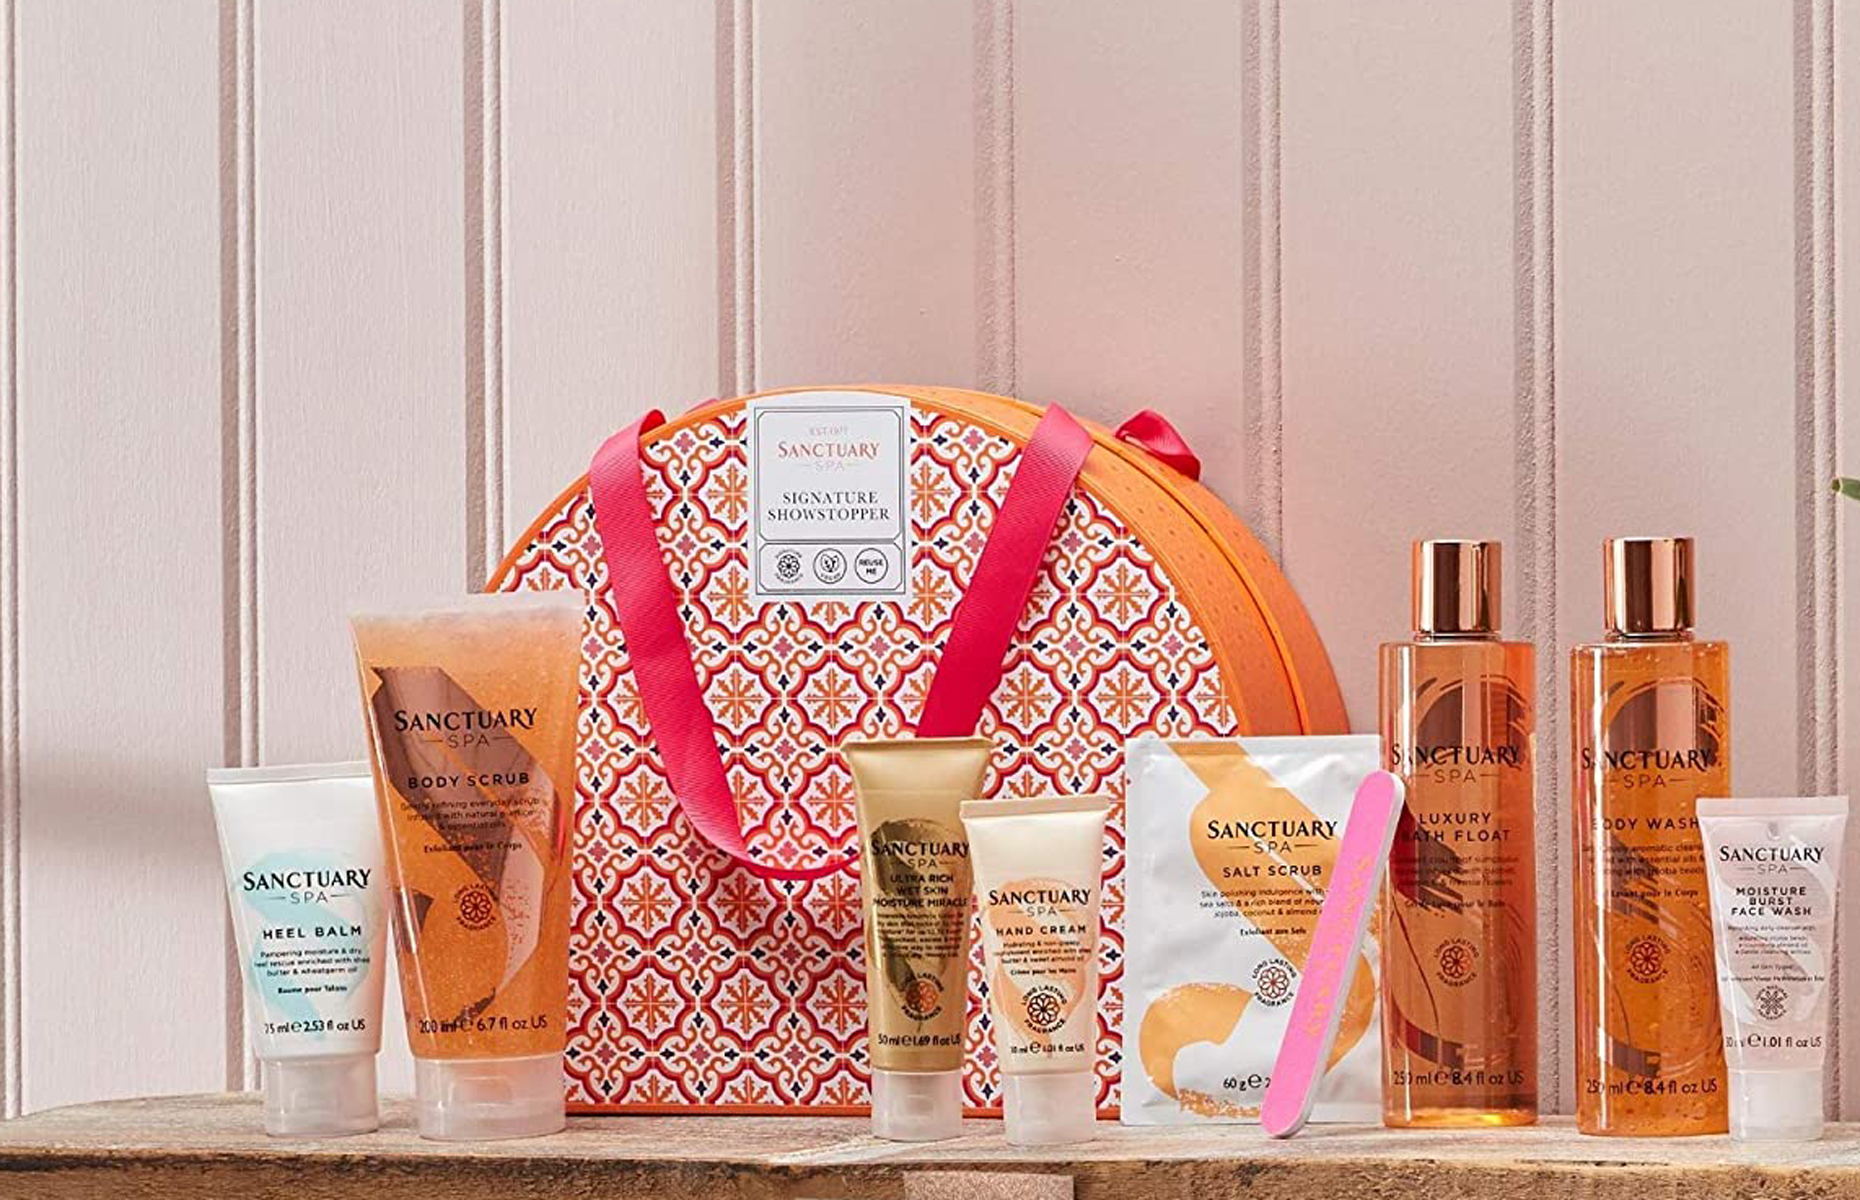 Save £18.25 on this luxurious Sanctuary Spa Gift Sets - that's almost half price! | GoodtoKnow